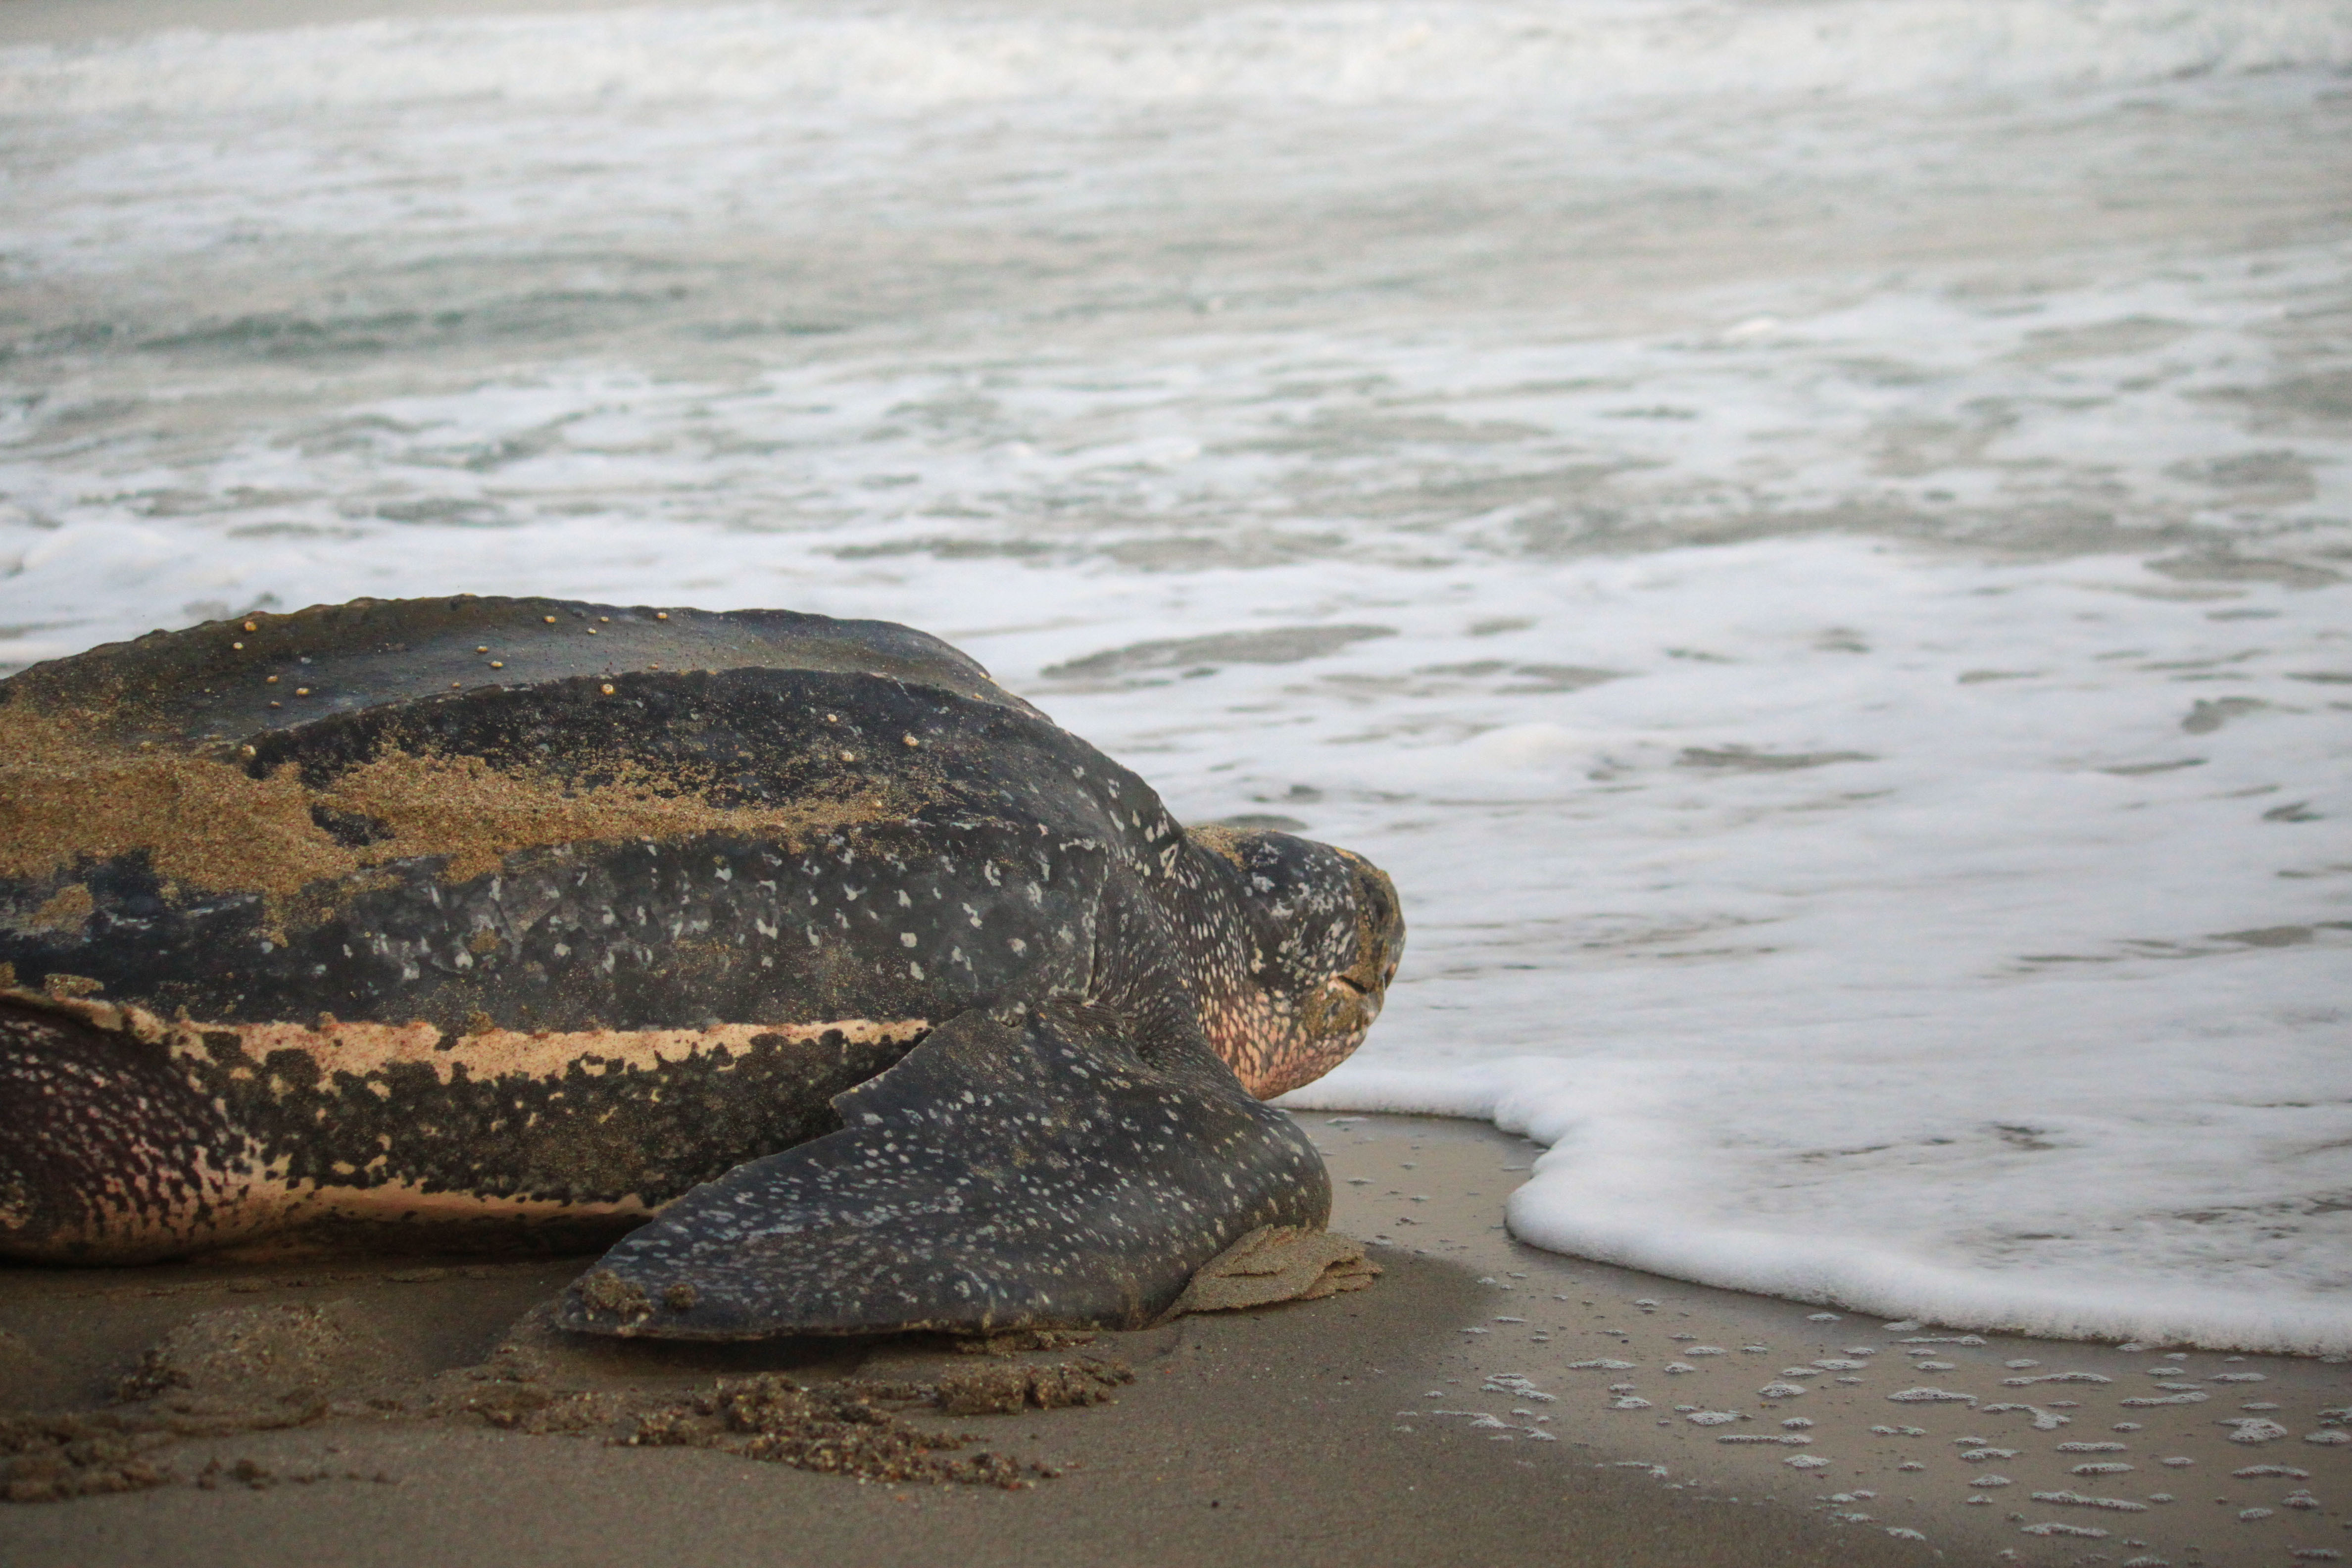 Sea turtle going back to sea after laying eggs